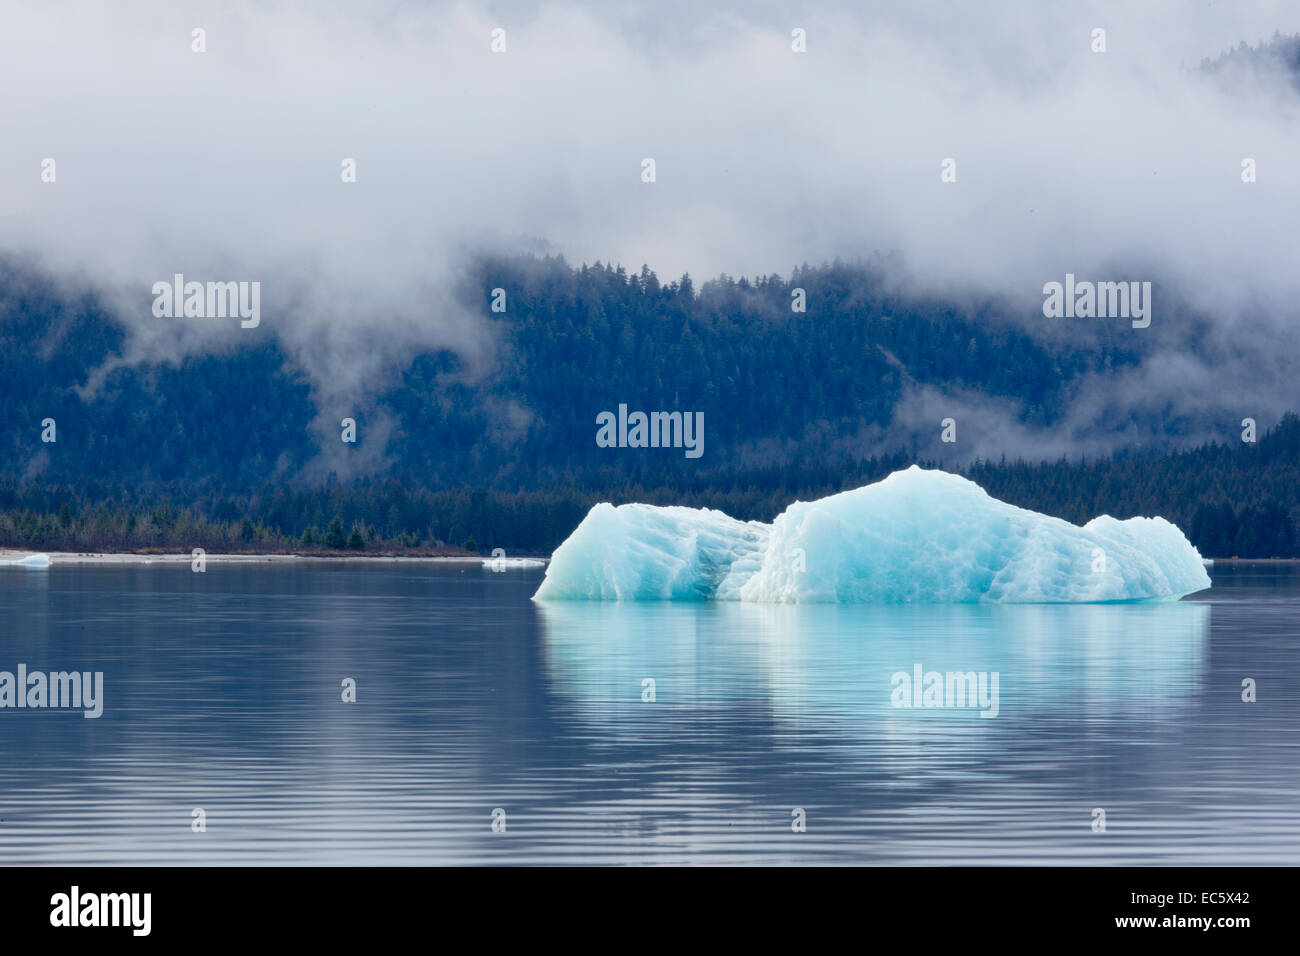 Diminishing glacier melts in waters created by climate change's effects on Mendenhall Glacier, in Juneau, Alaska. - Stock Image